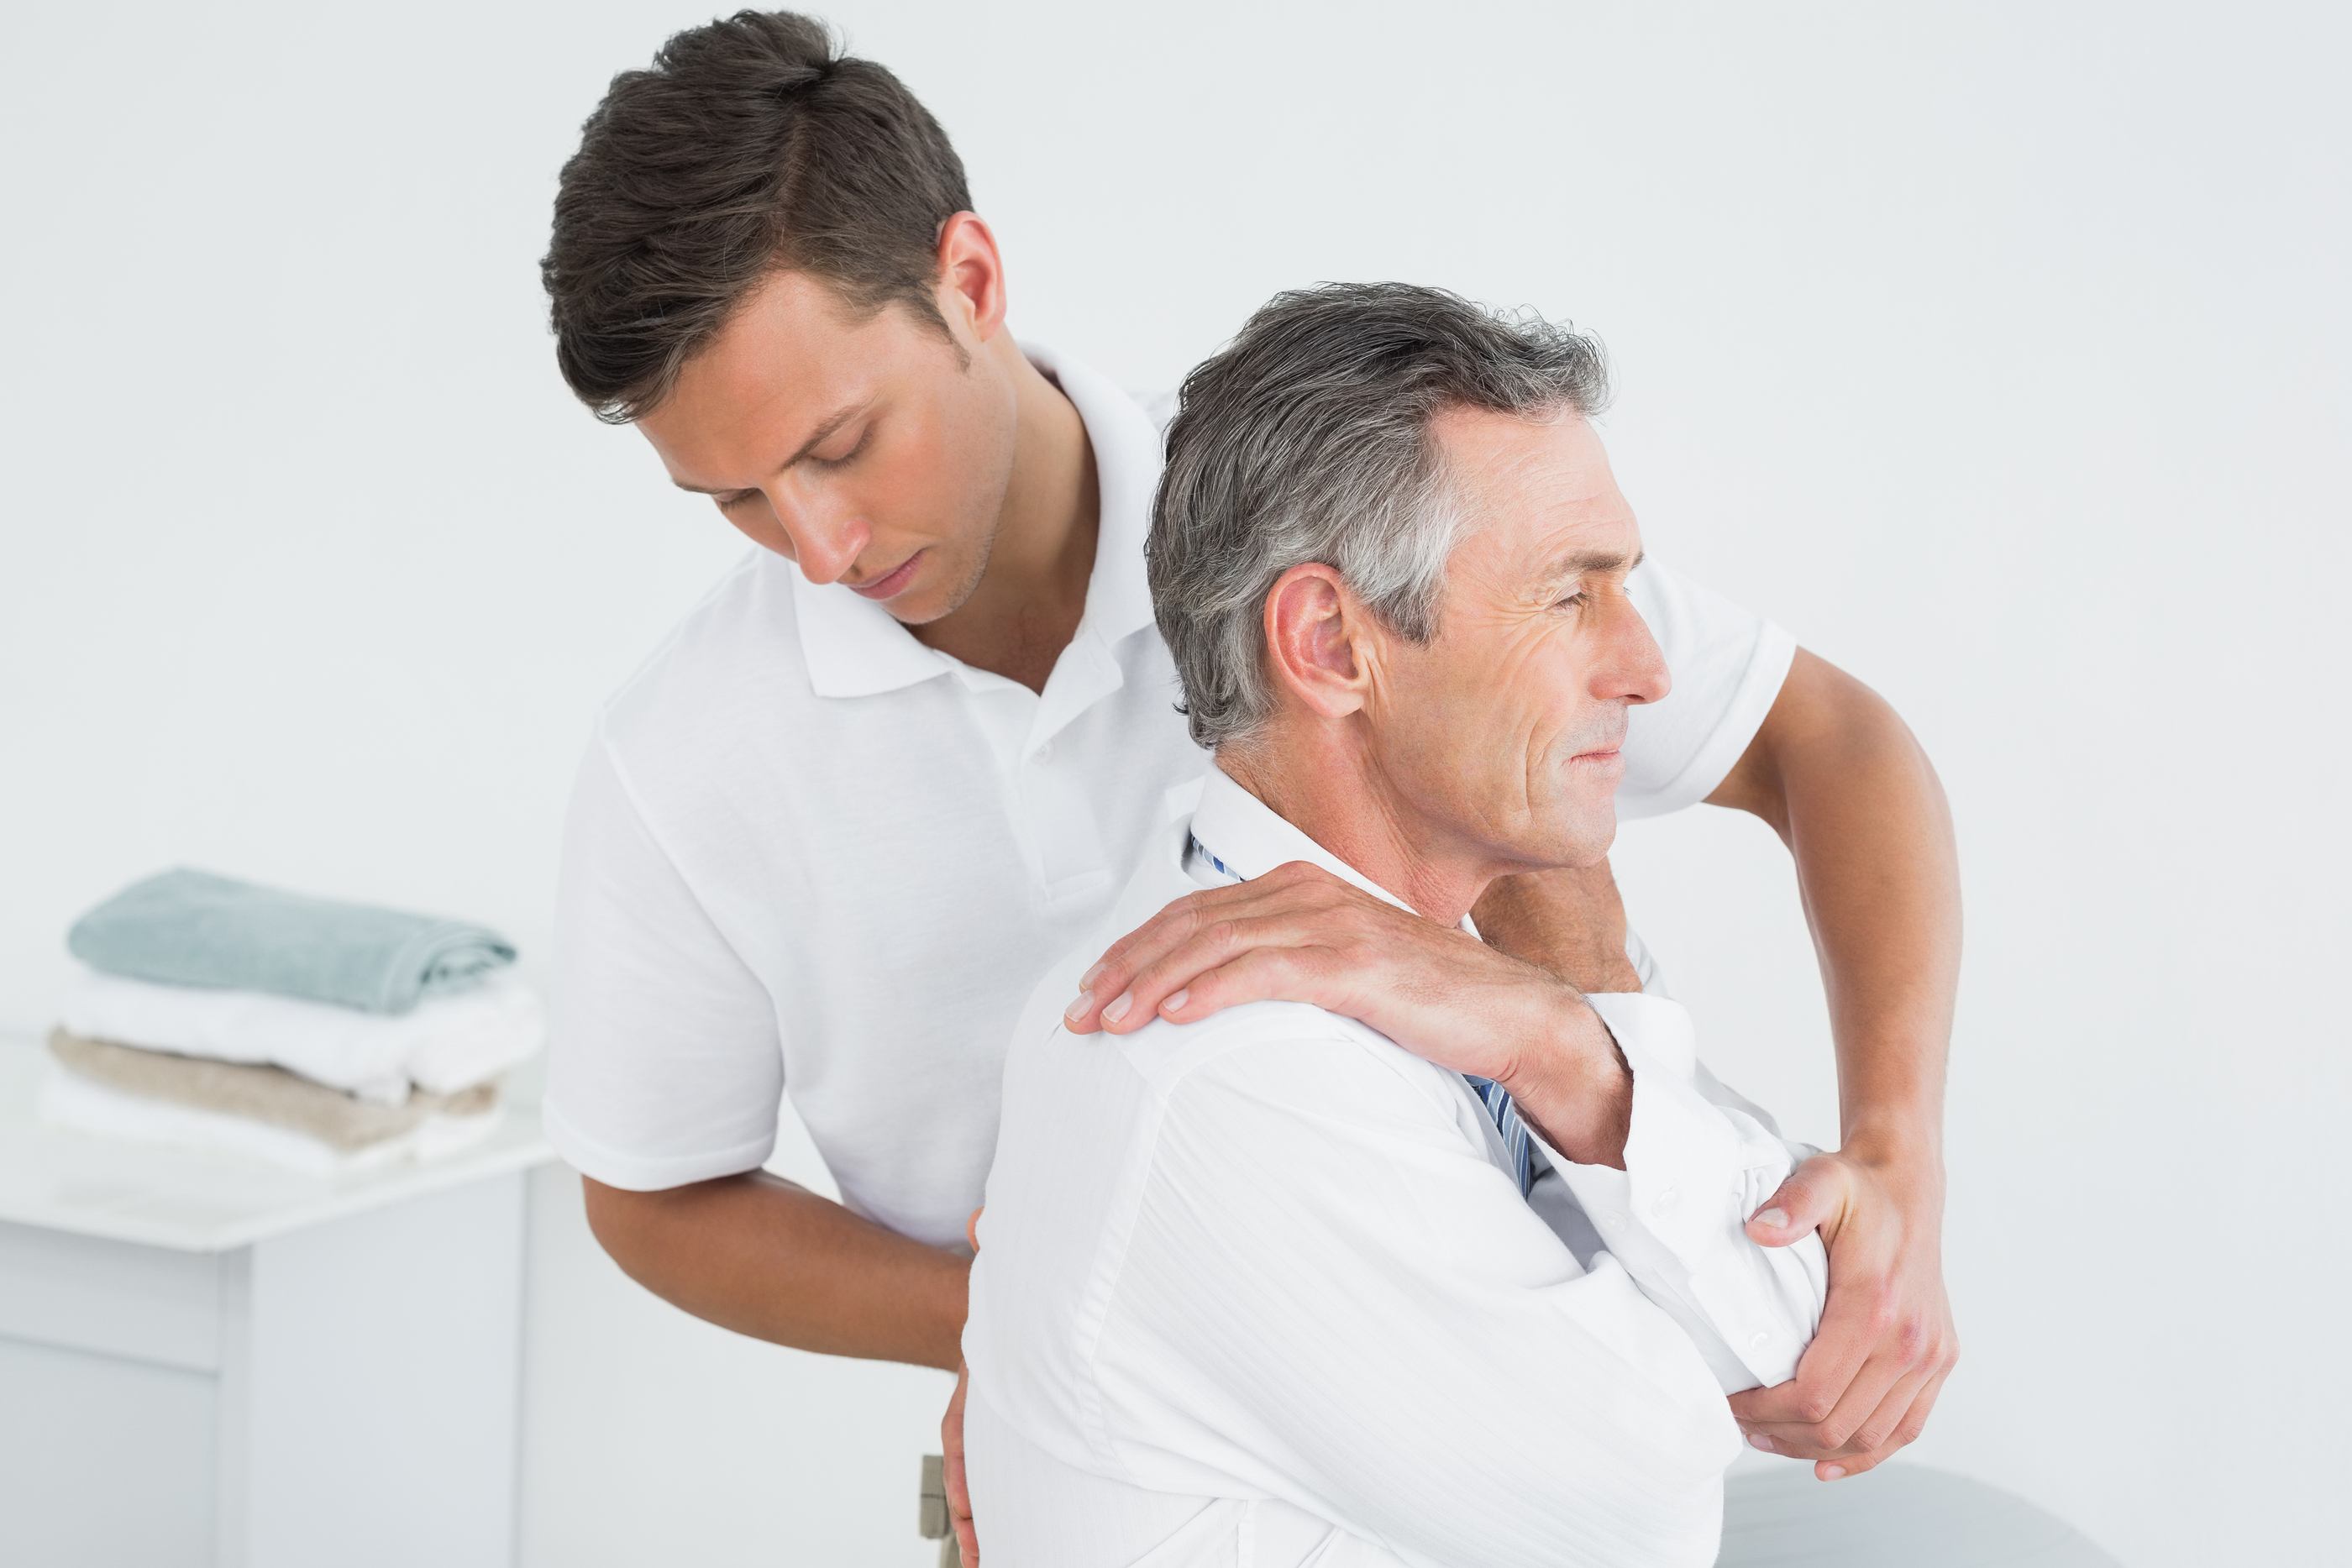 Chiropractic Care for Auto Accident Injury – Pain Relief is Possible